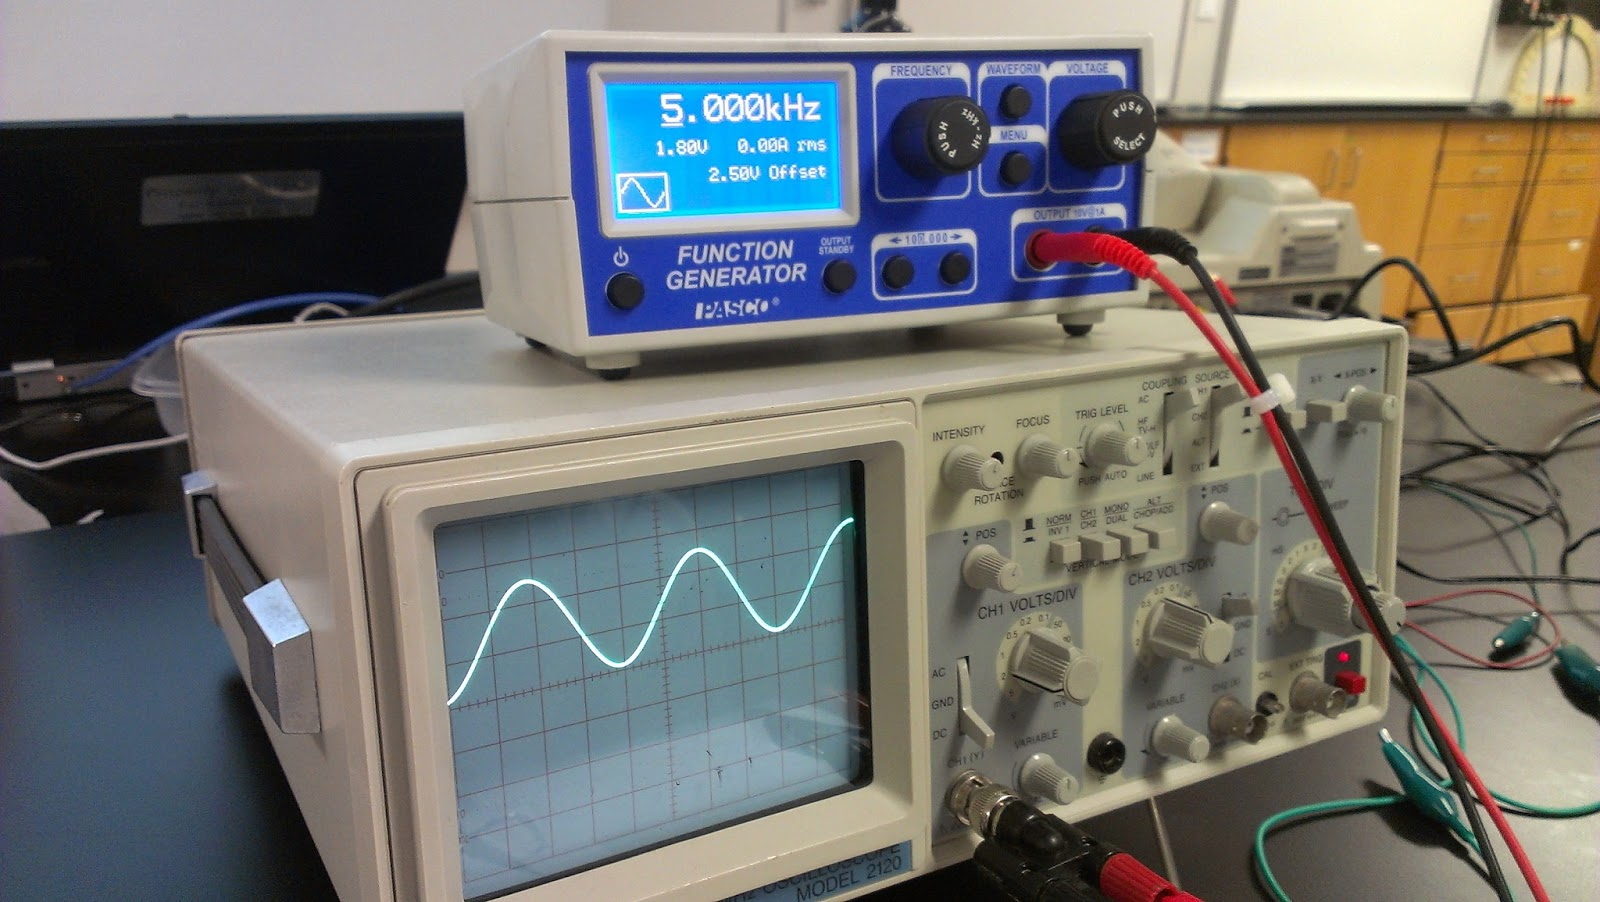 Oscilloscope Lab Engineering44zkuang Should See On The When You Measure Real Rc Circuit Use A Multimeter To Ac Voltage And Dc Of Generator We Find That Vac 117v Vdc 25v Which Shows Us Represents